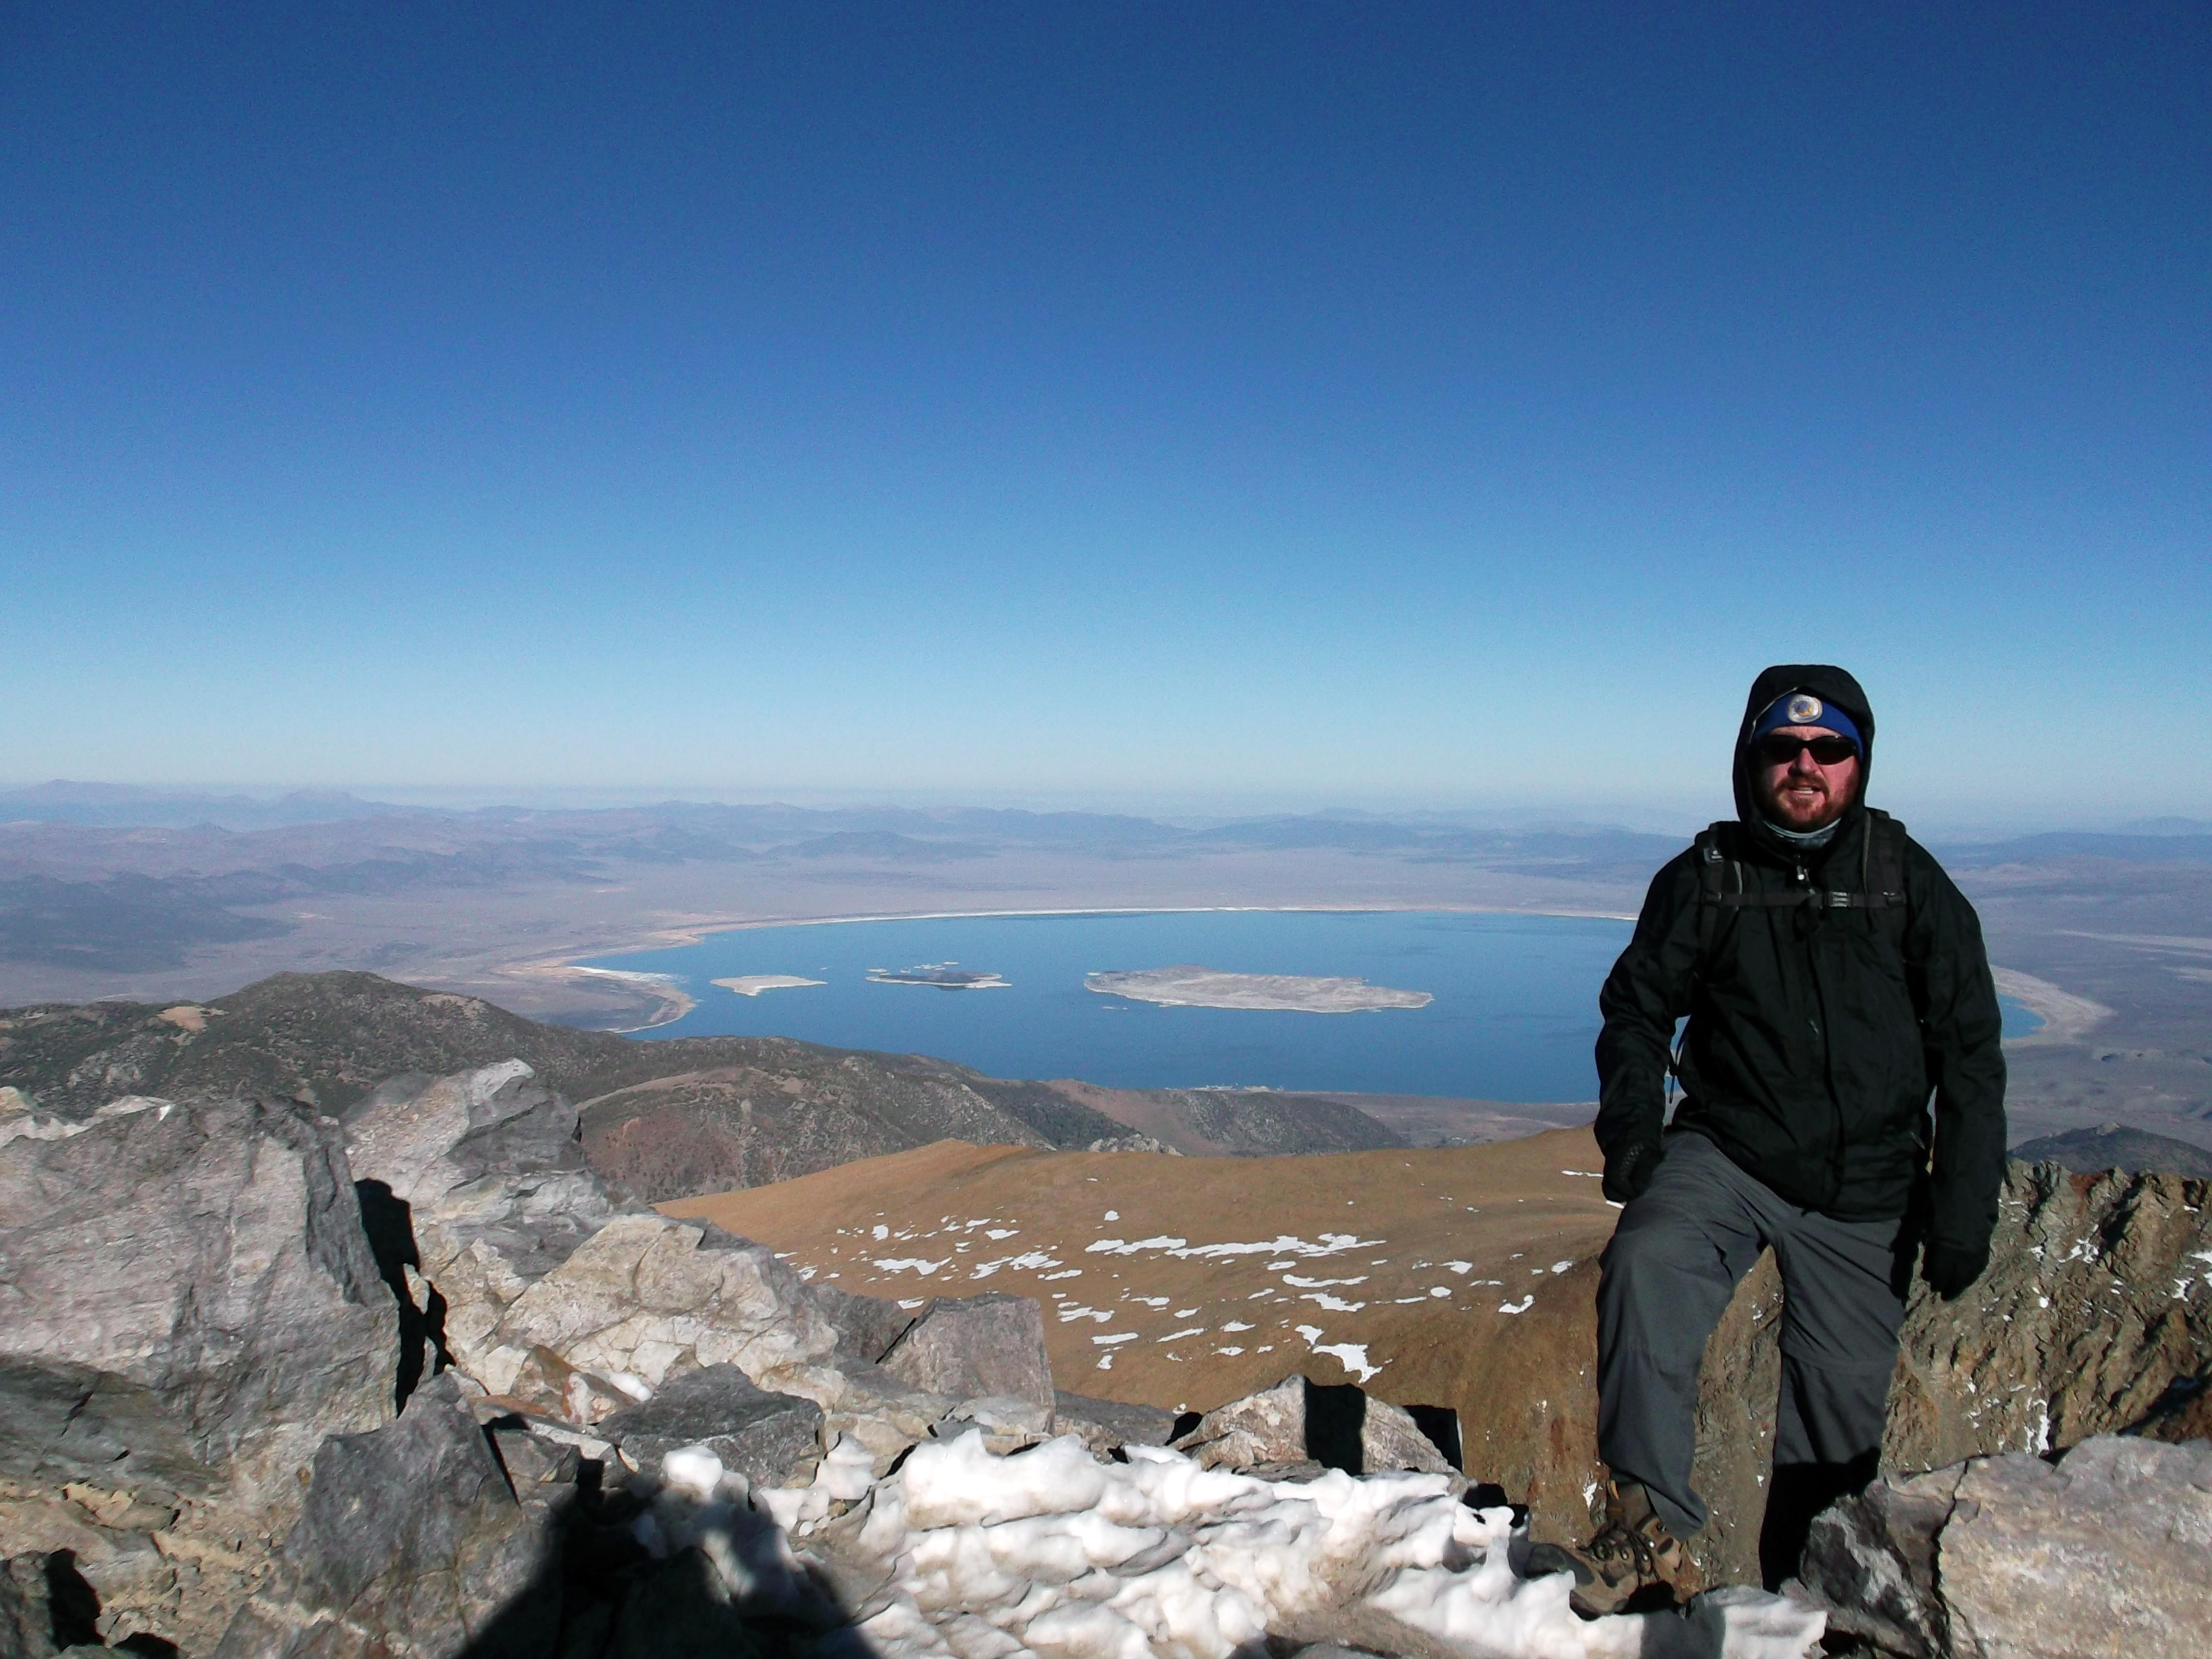 Shane towers over Mono Lake from the summit of Mt. Dana, as the vastitudes of Nevada's Great Basin Desert curve away behind him.  (photo by D. Speredelozzi)